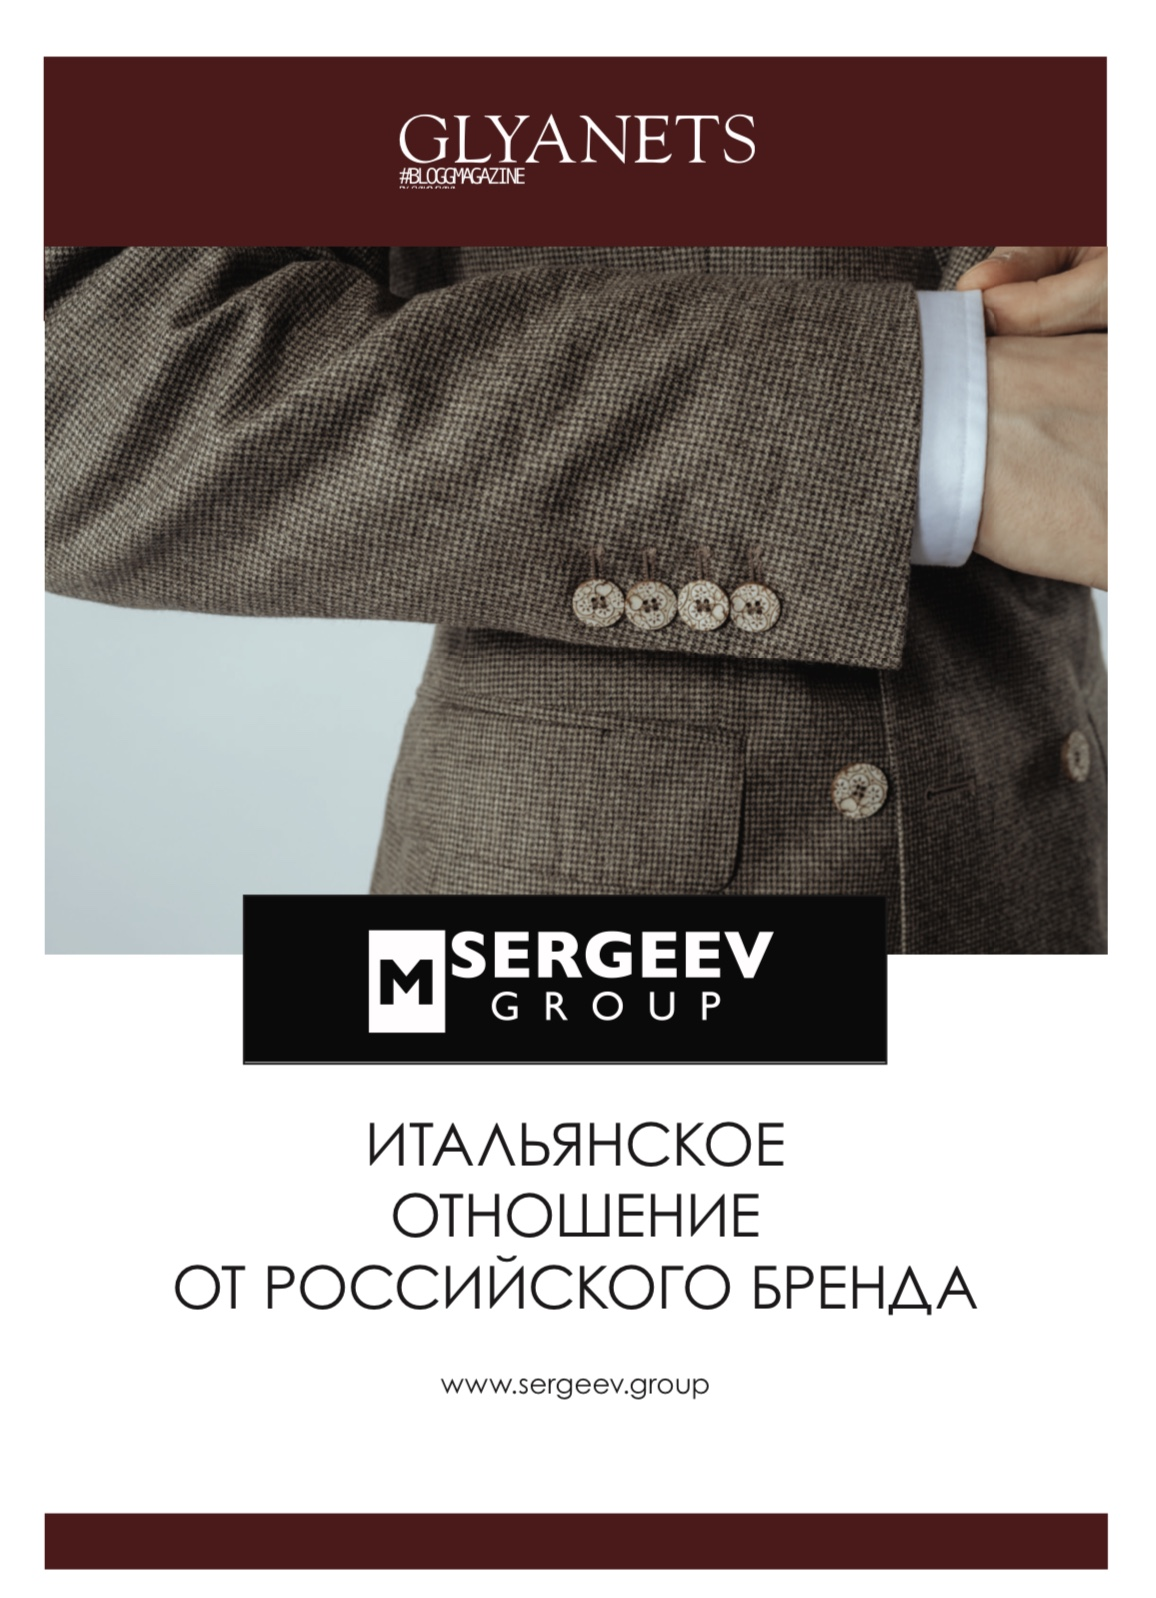 sergeevgroup_head